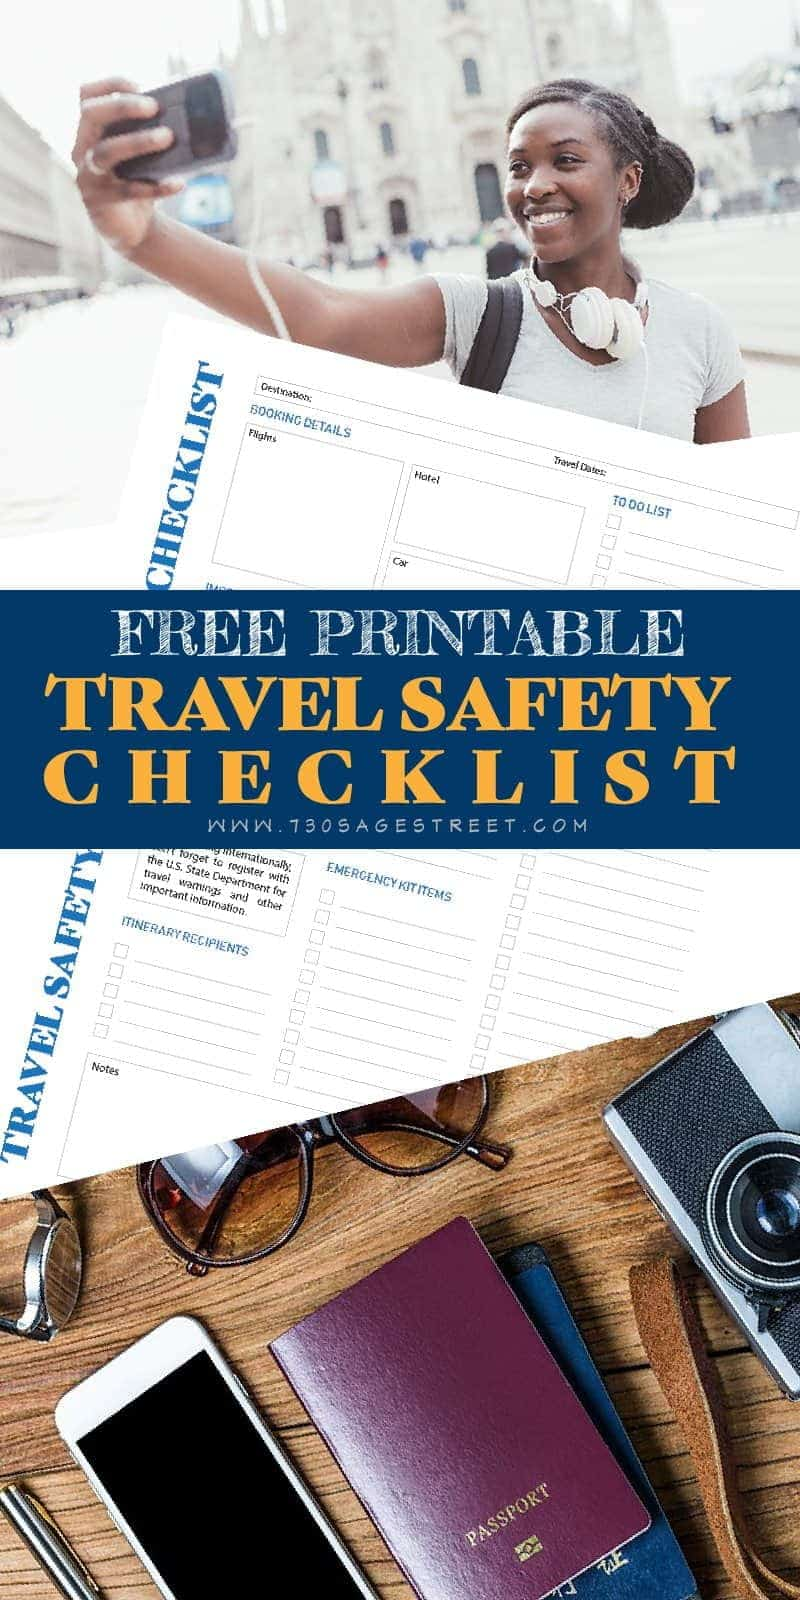 Free printable travel safety checklist. #travel #traveltips #travelling #mexico #cancun #tips #safety #printable #checklist